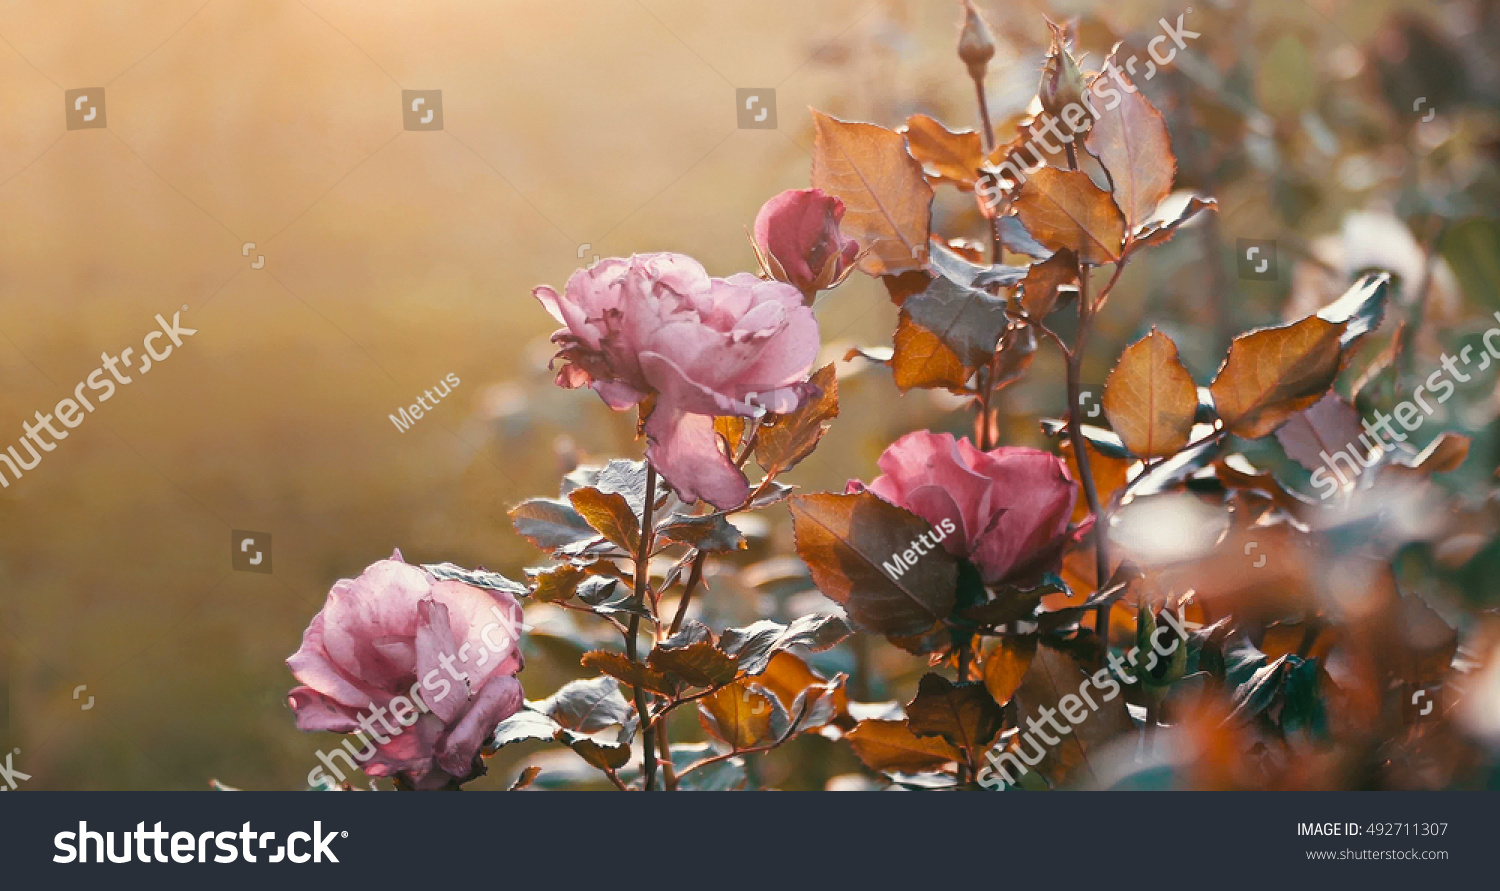 Gorgeous roses on bush in autumn garden, selective focus, shallow depth of field, a lot of space for text, toned colorized shot.